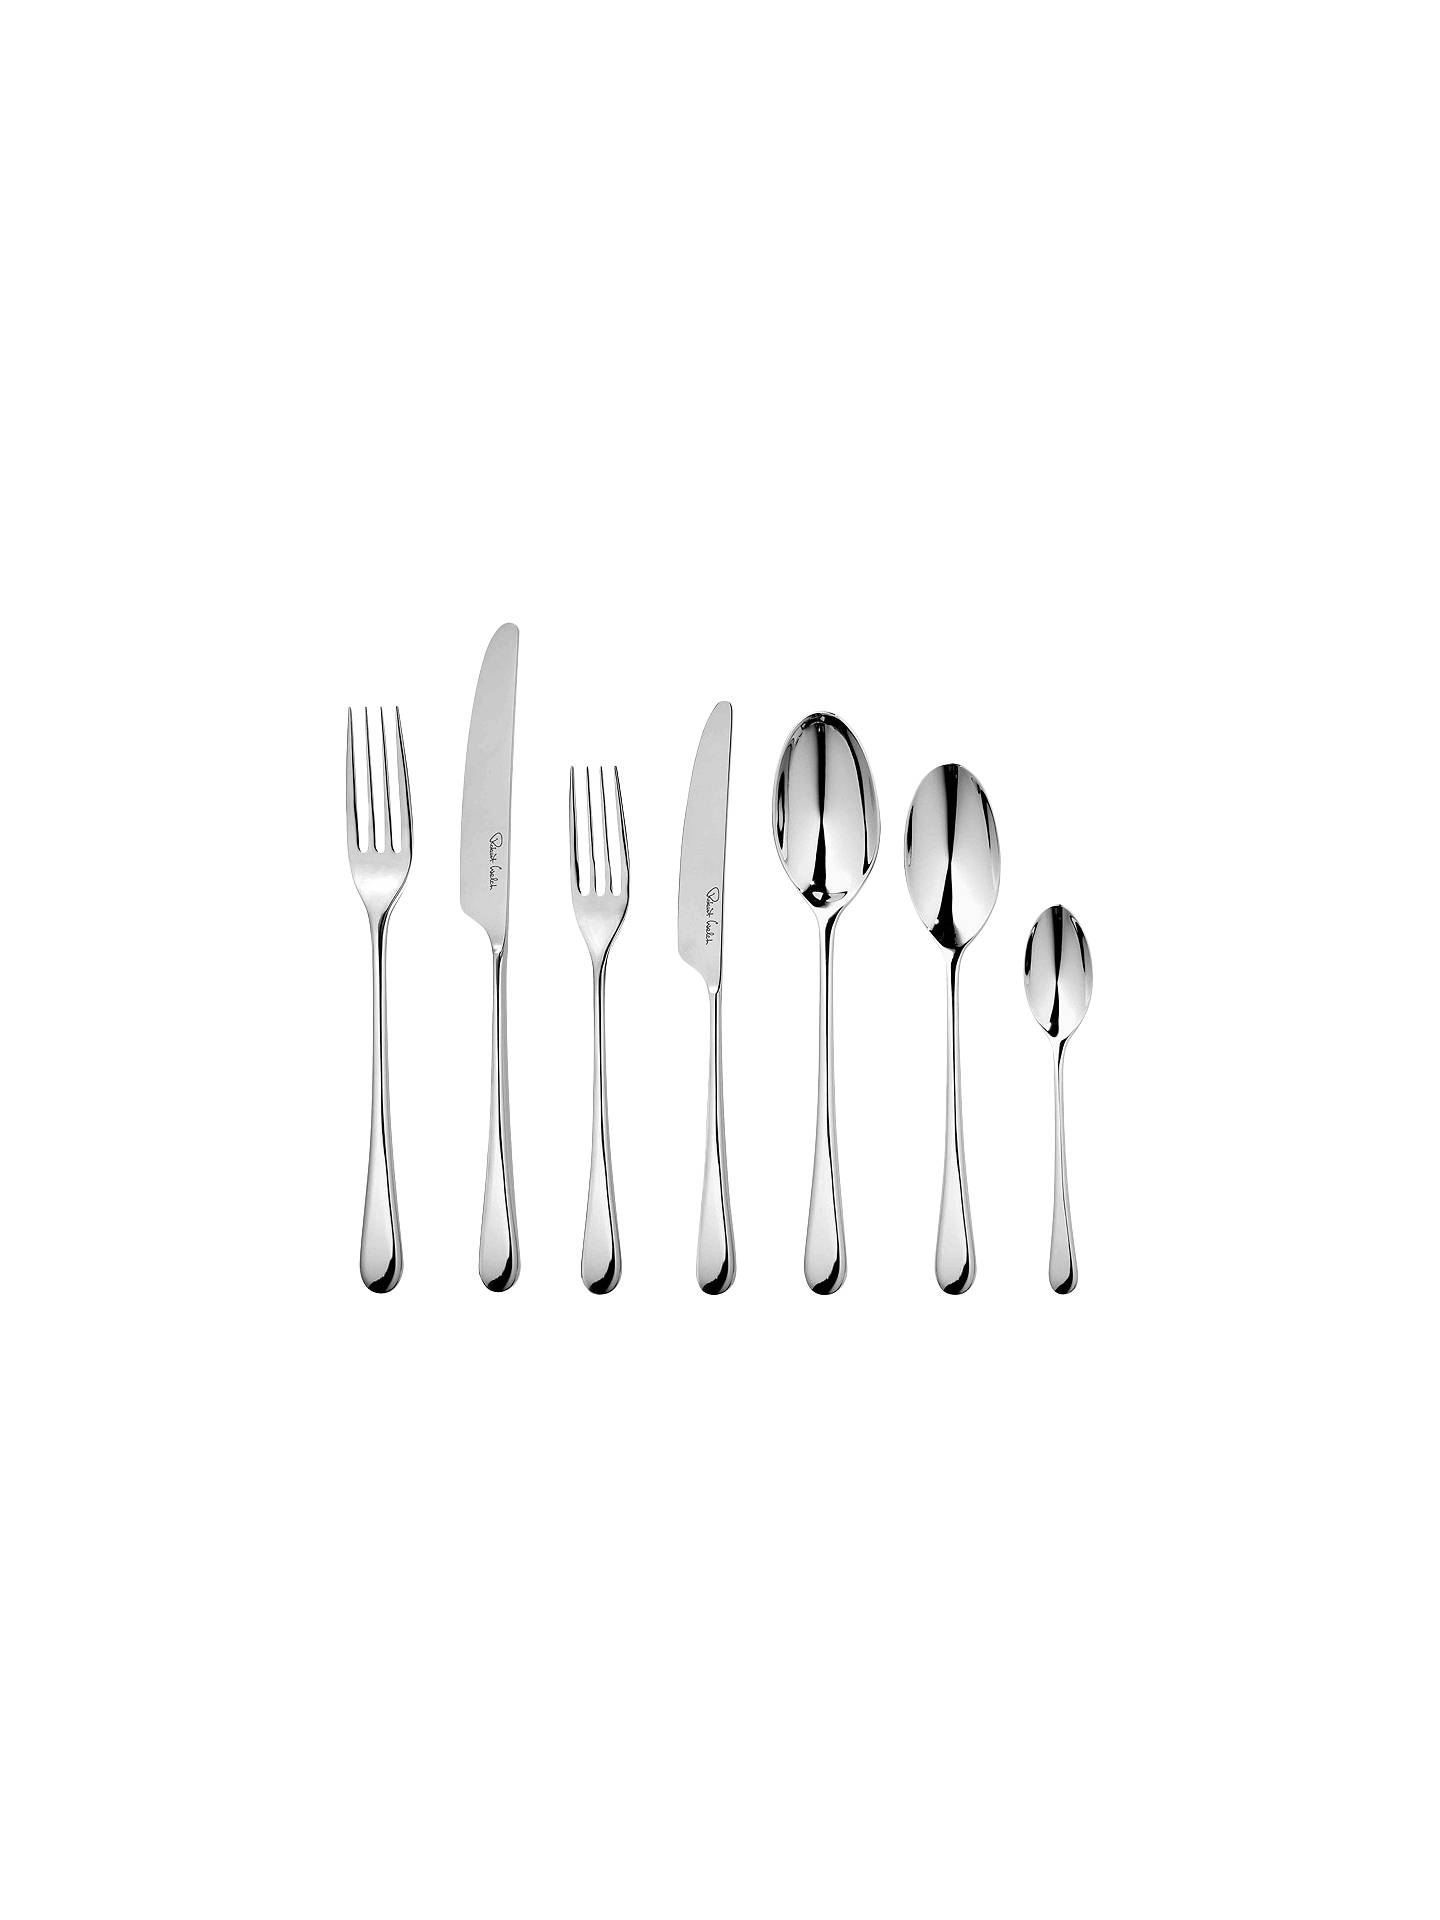 BuyRobert Welch Iona Stainless Steel Cutlery Set, 84 Piece Online at johnlewis.com